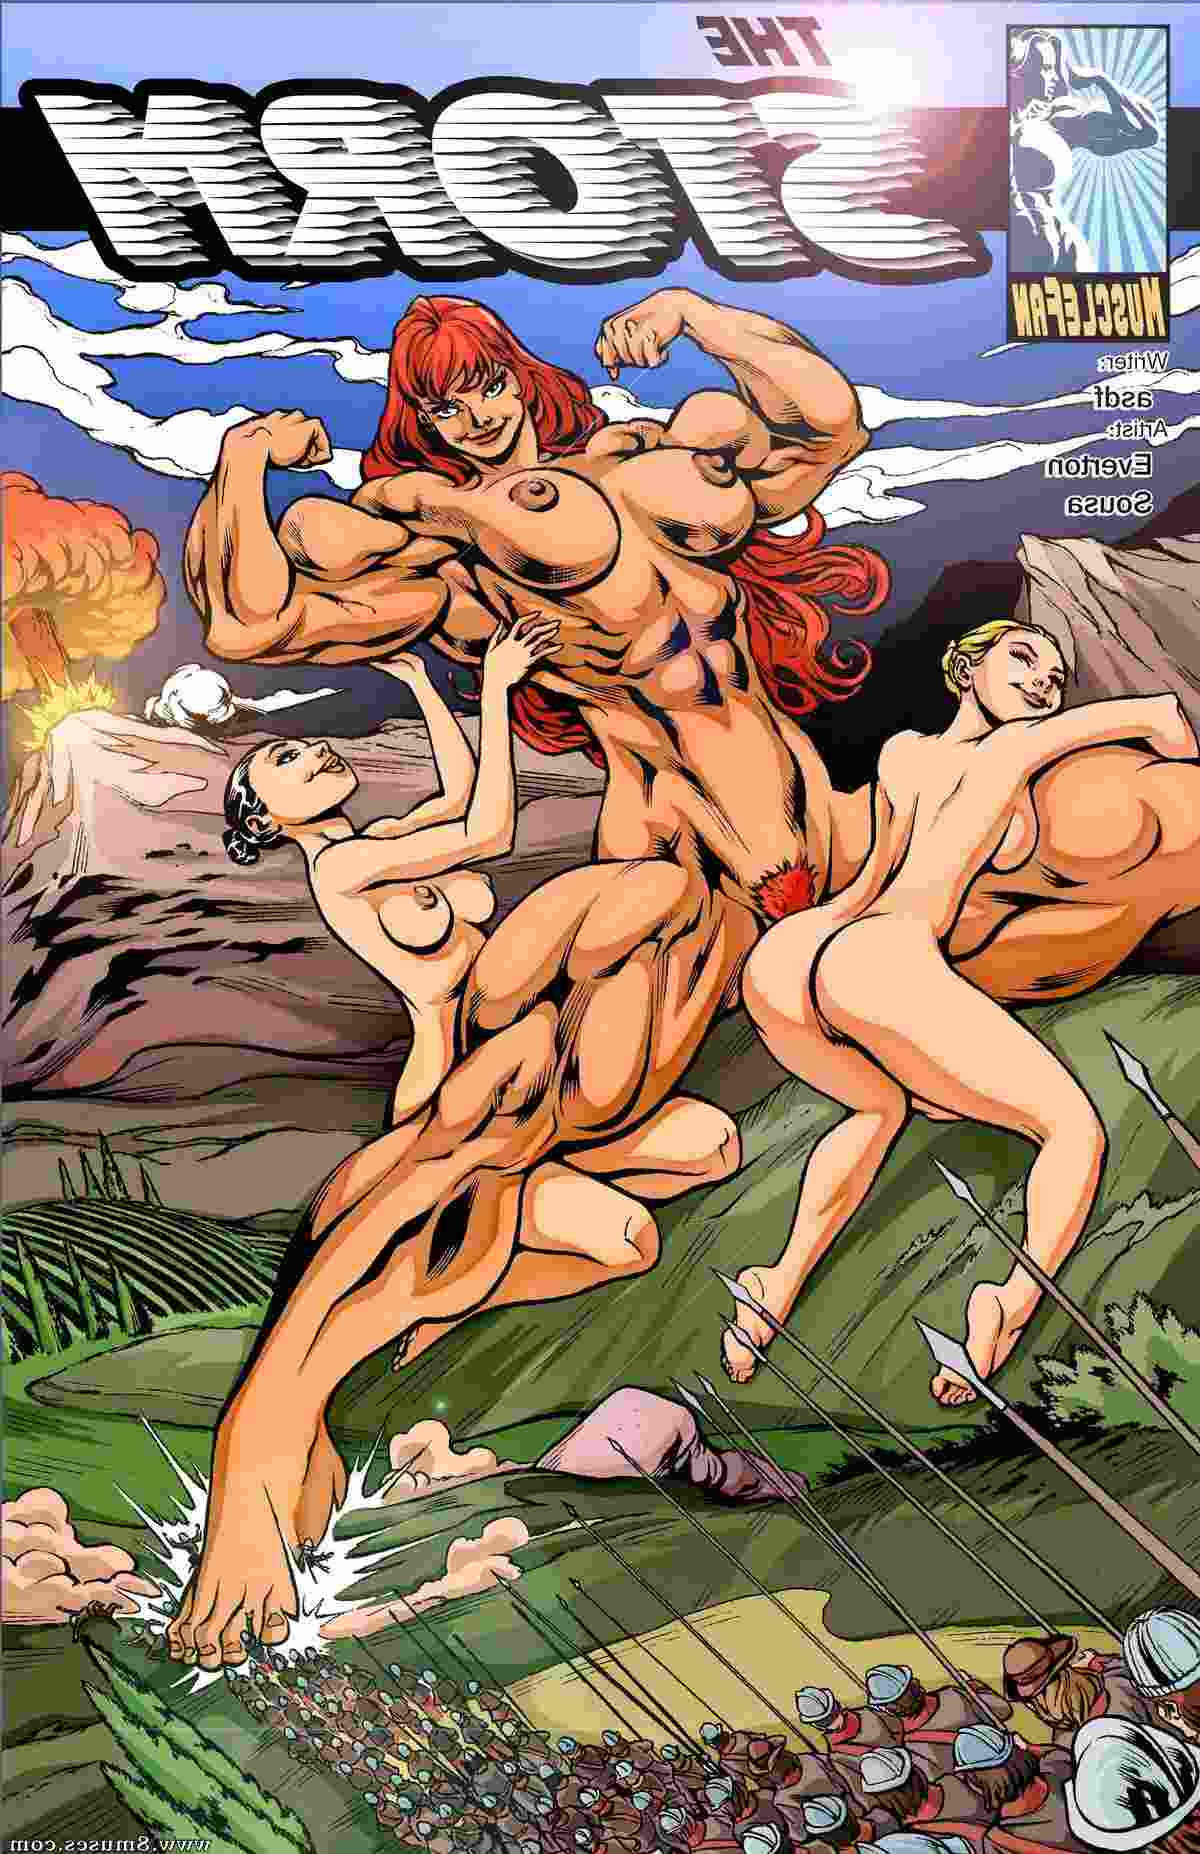 MuscleFan-Comics/The-Storm The_Storm__8muses_-_Sex_and_Porn_Comics.jpg